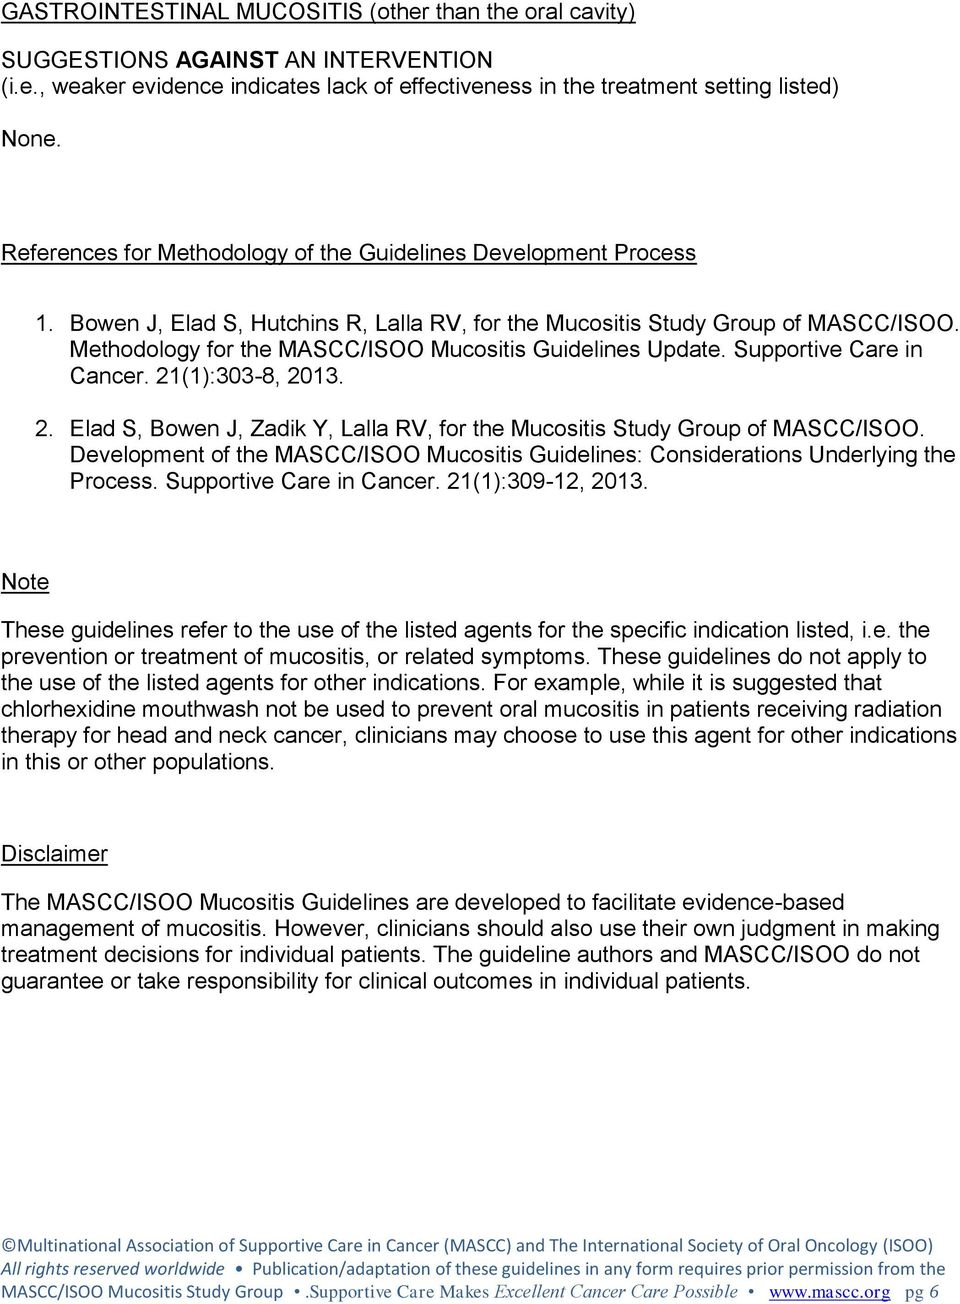 Methodology for the MASCC/ISOO Mucositis Guidelines Update. Supportive Care in Cancer. 21(1):303-8, 2013. 2. Elad S, Bowen J, Zadik Y, Lalla RV, for the Mucositis Study Group of MASCC/ISOO.